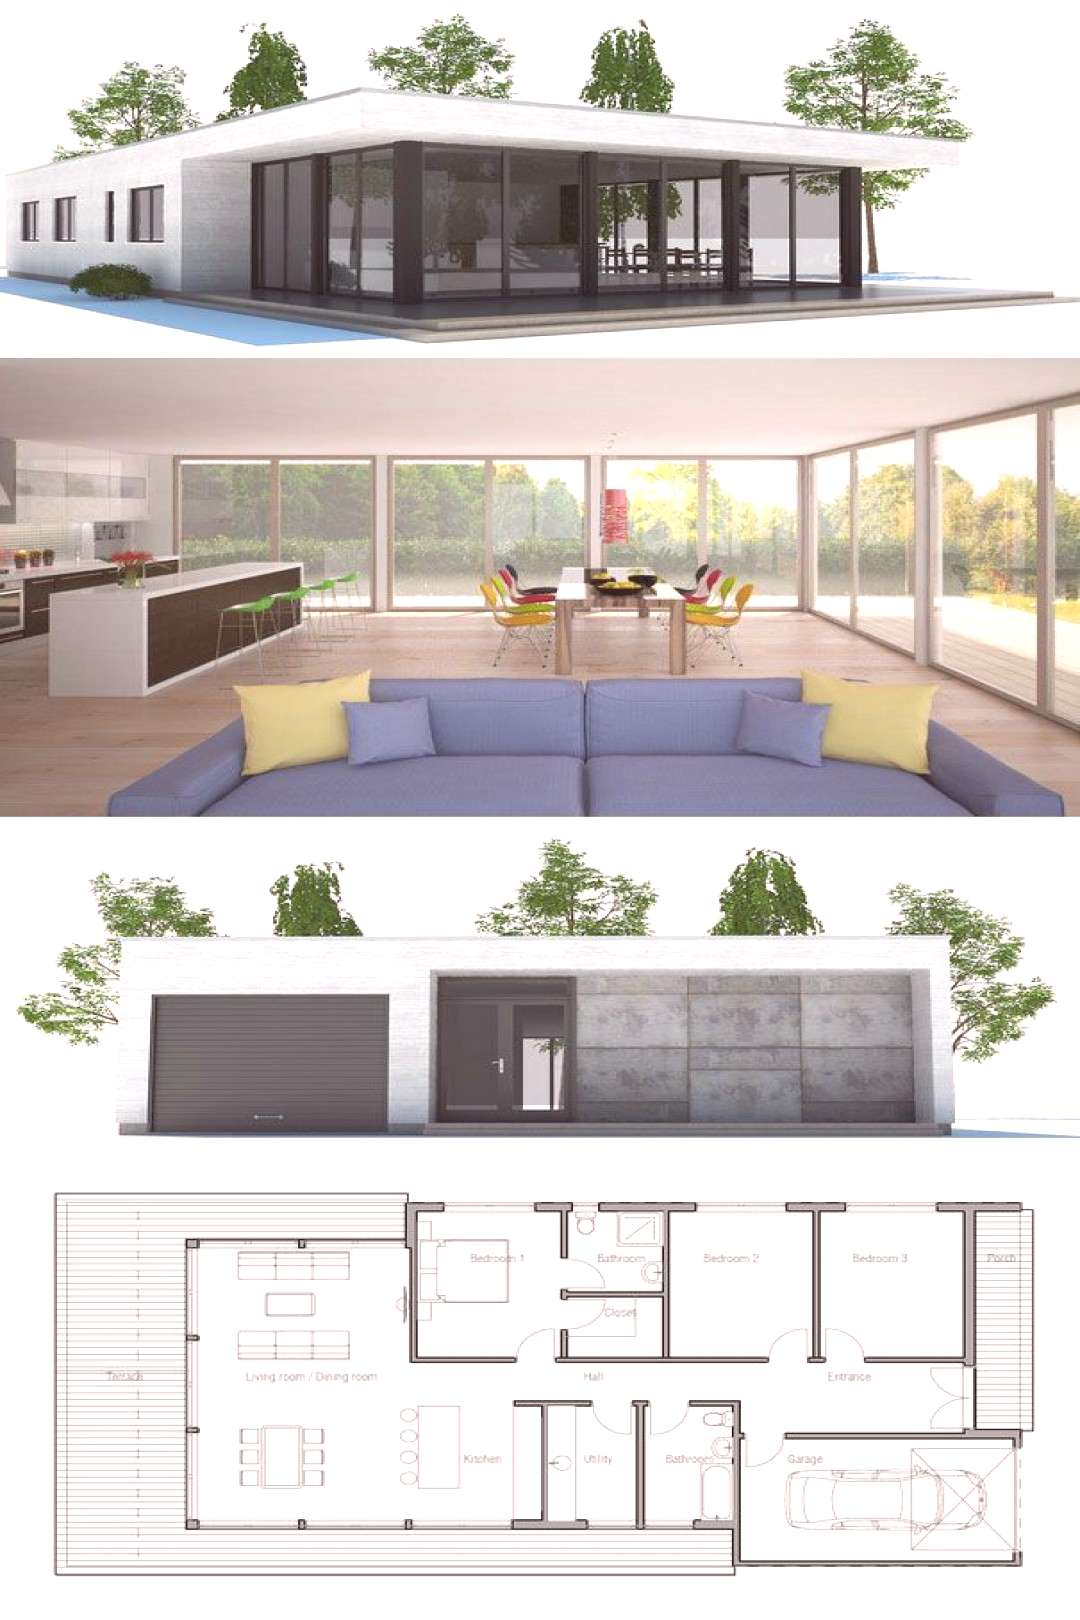 Shipping container home plans, new home decor, metal container houses, modular h...